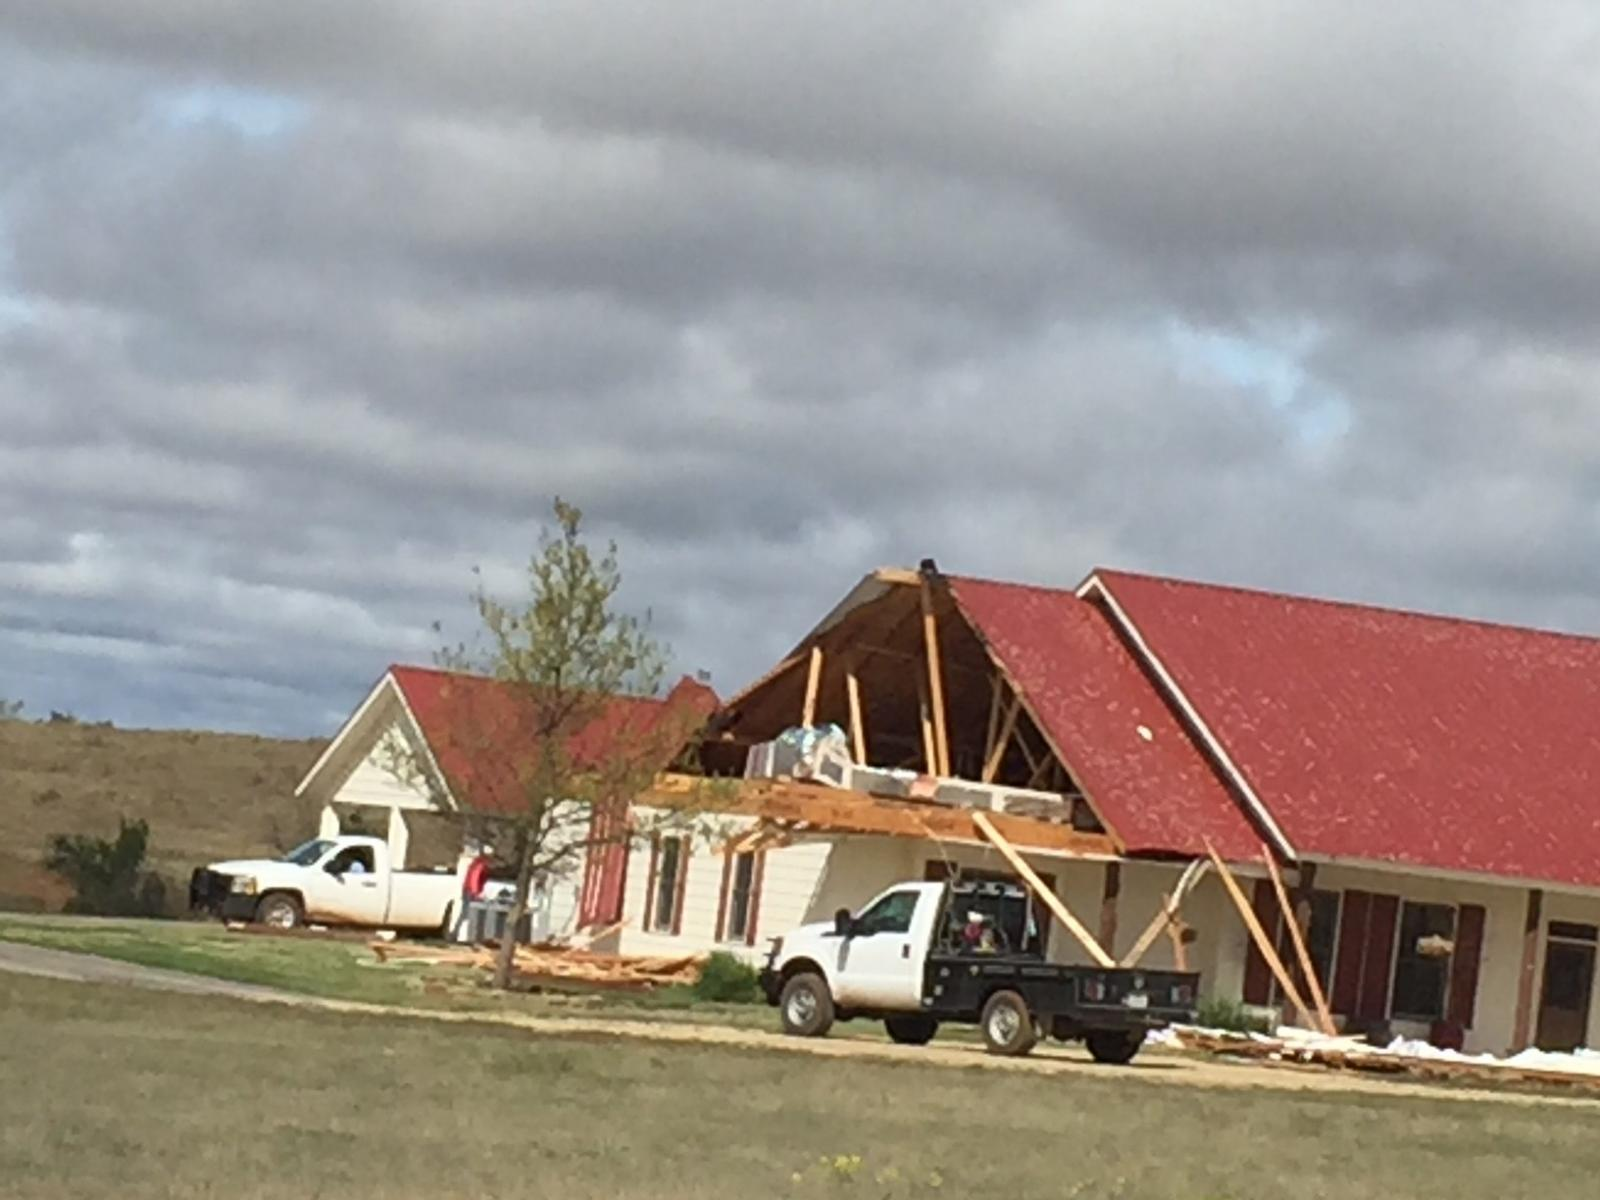 Tornado damage that occurred at Pitchfork Ranch during Tuesday afternoon. The picture was taken by John Lipe the following day.